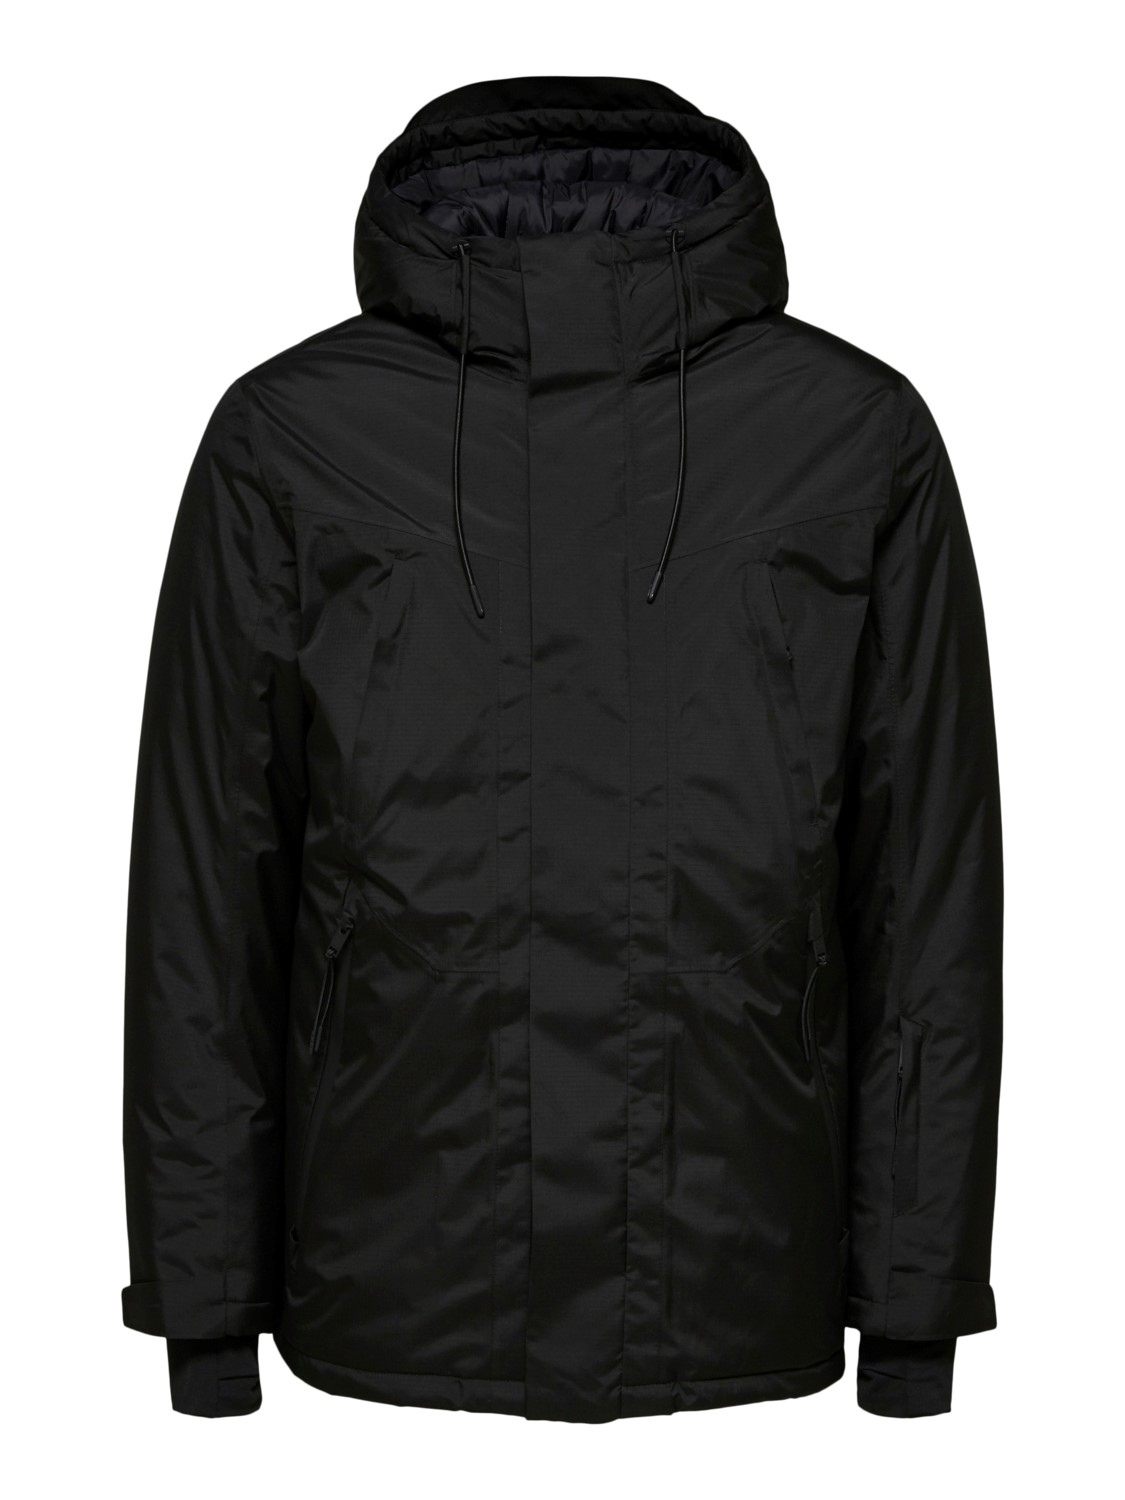 Selected Jakke - SLHARLO TECH RIBSTOP PARKA BLACK | Gate36 Hobro